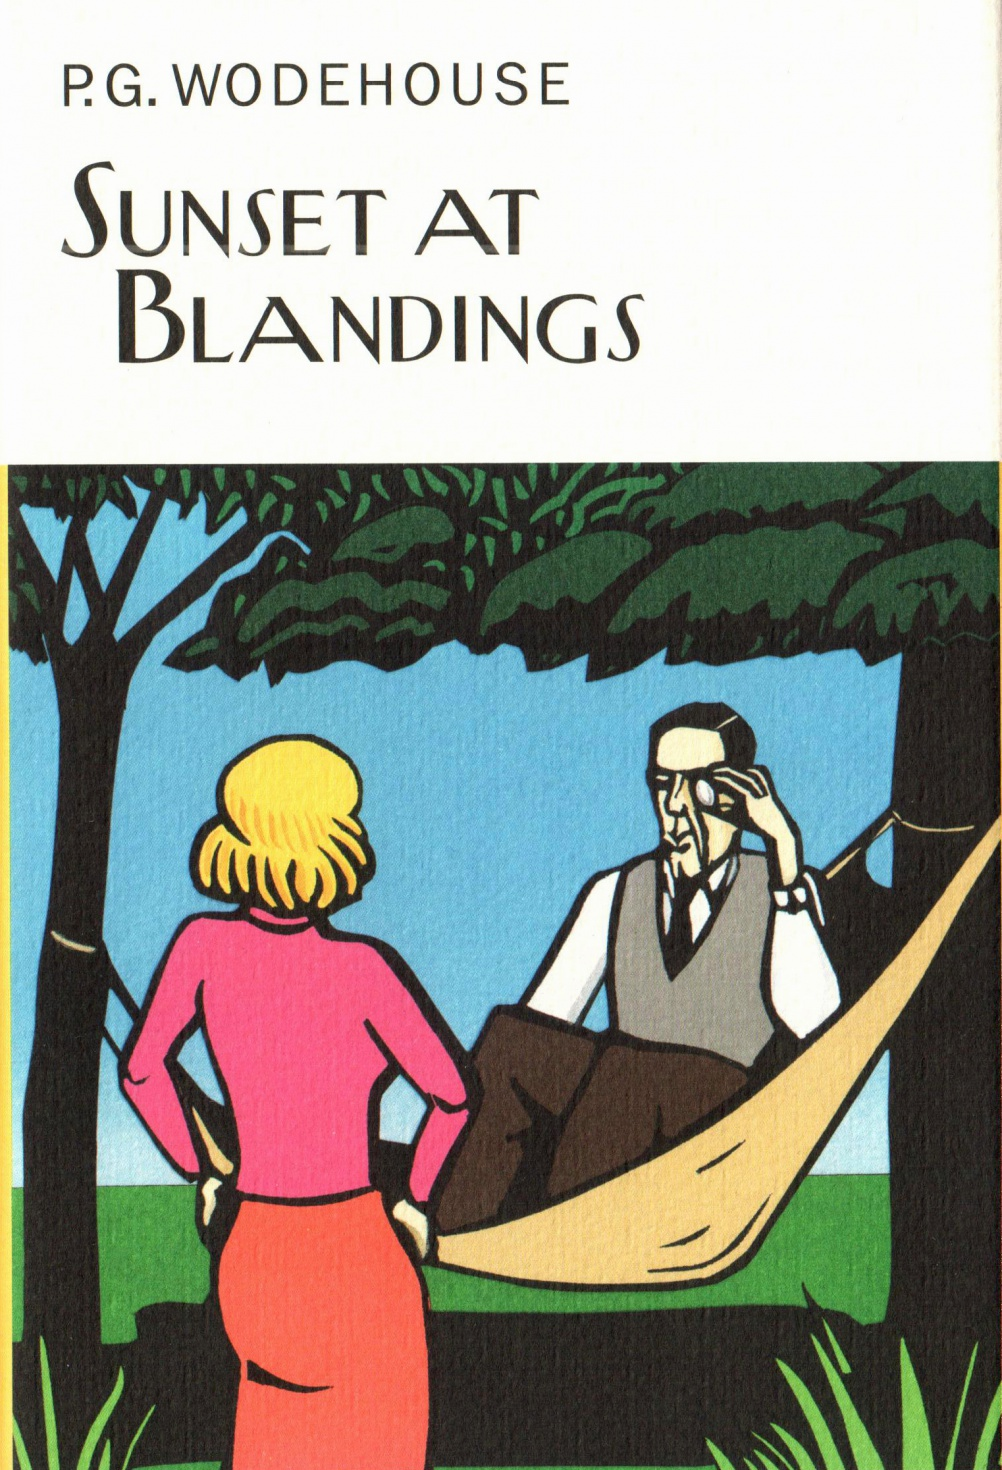 97 Sunset at Blandings